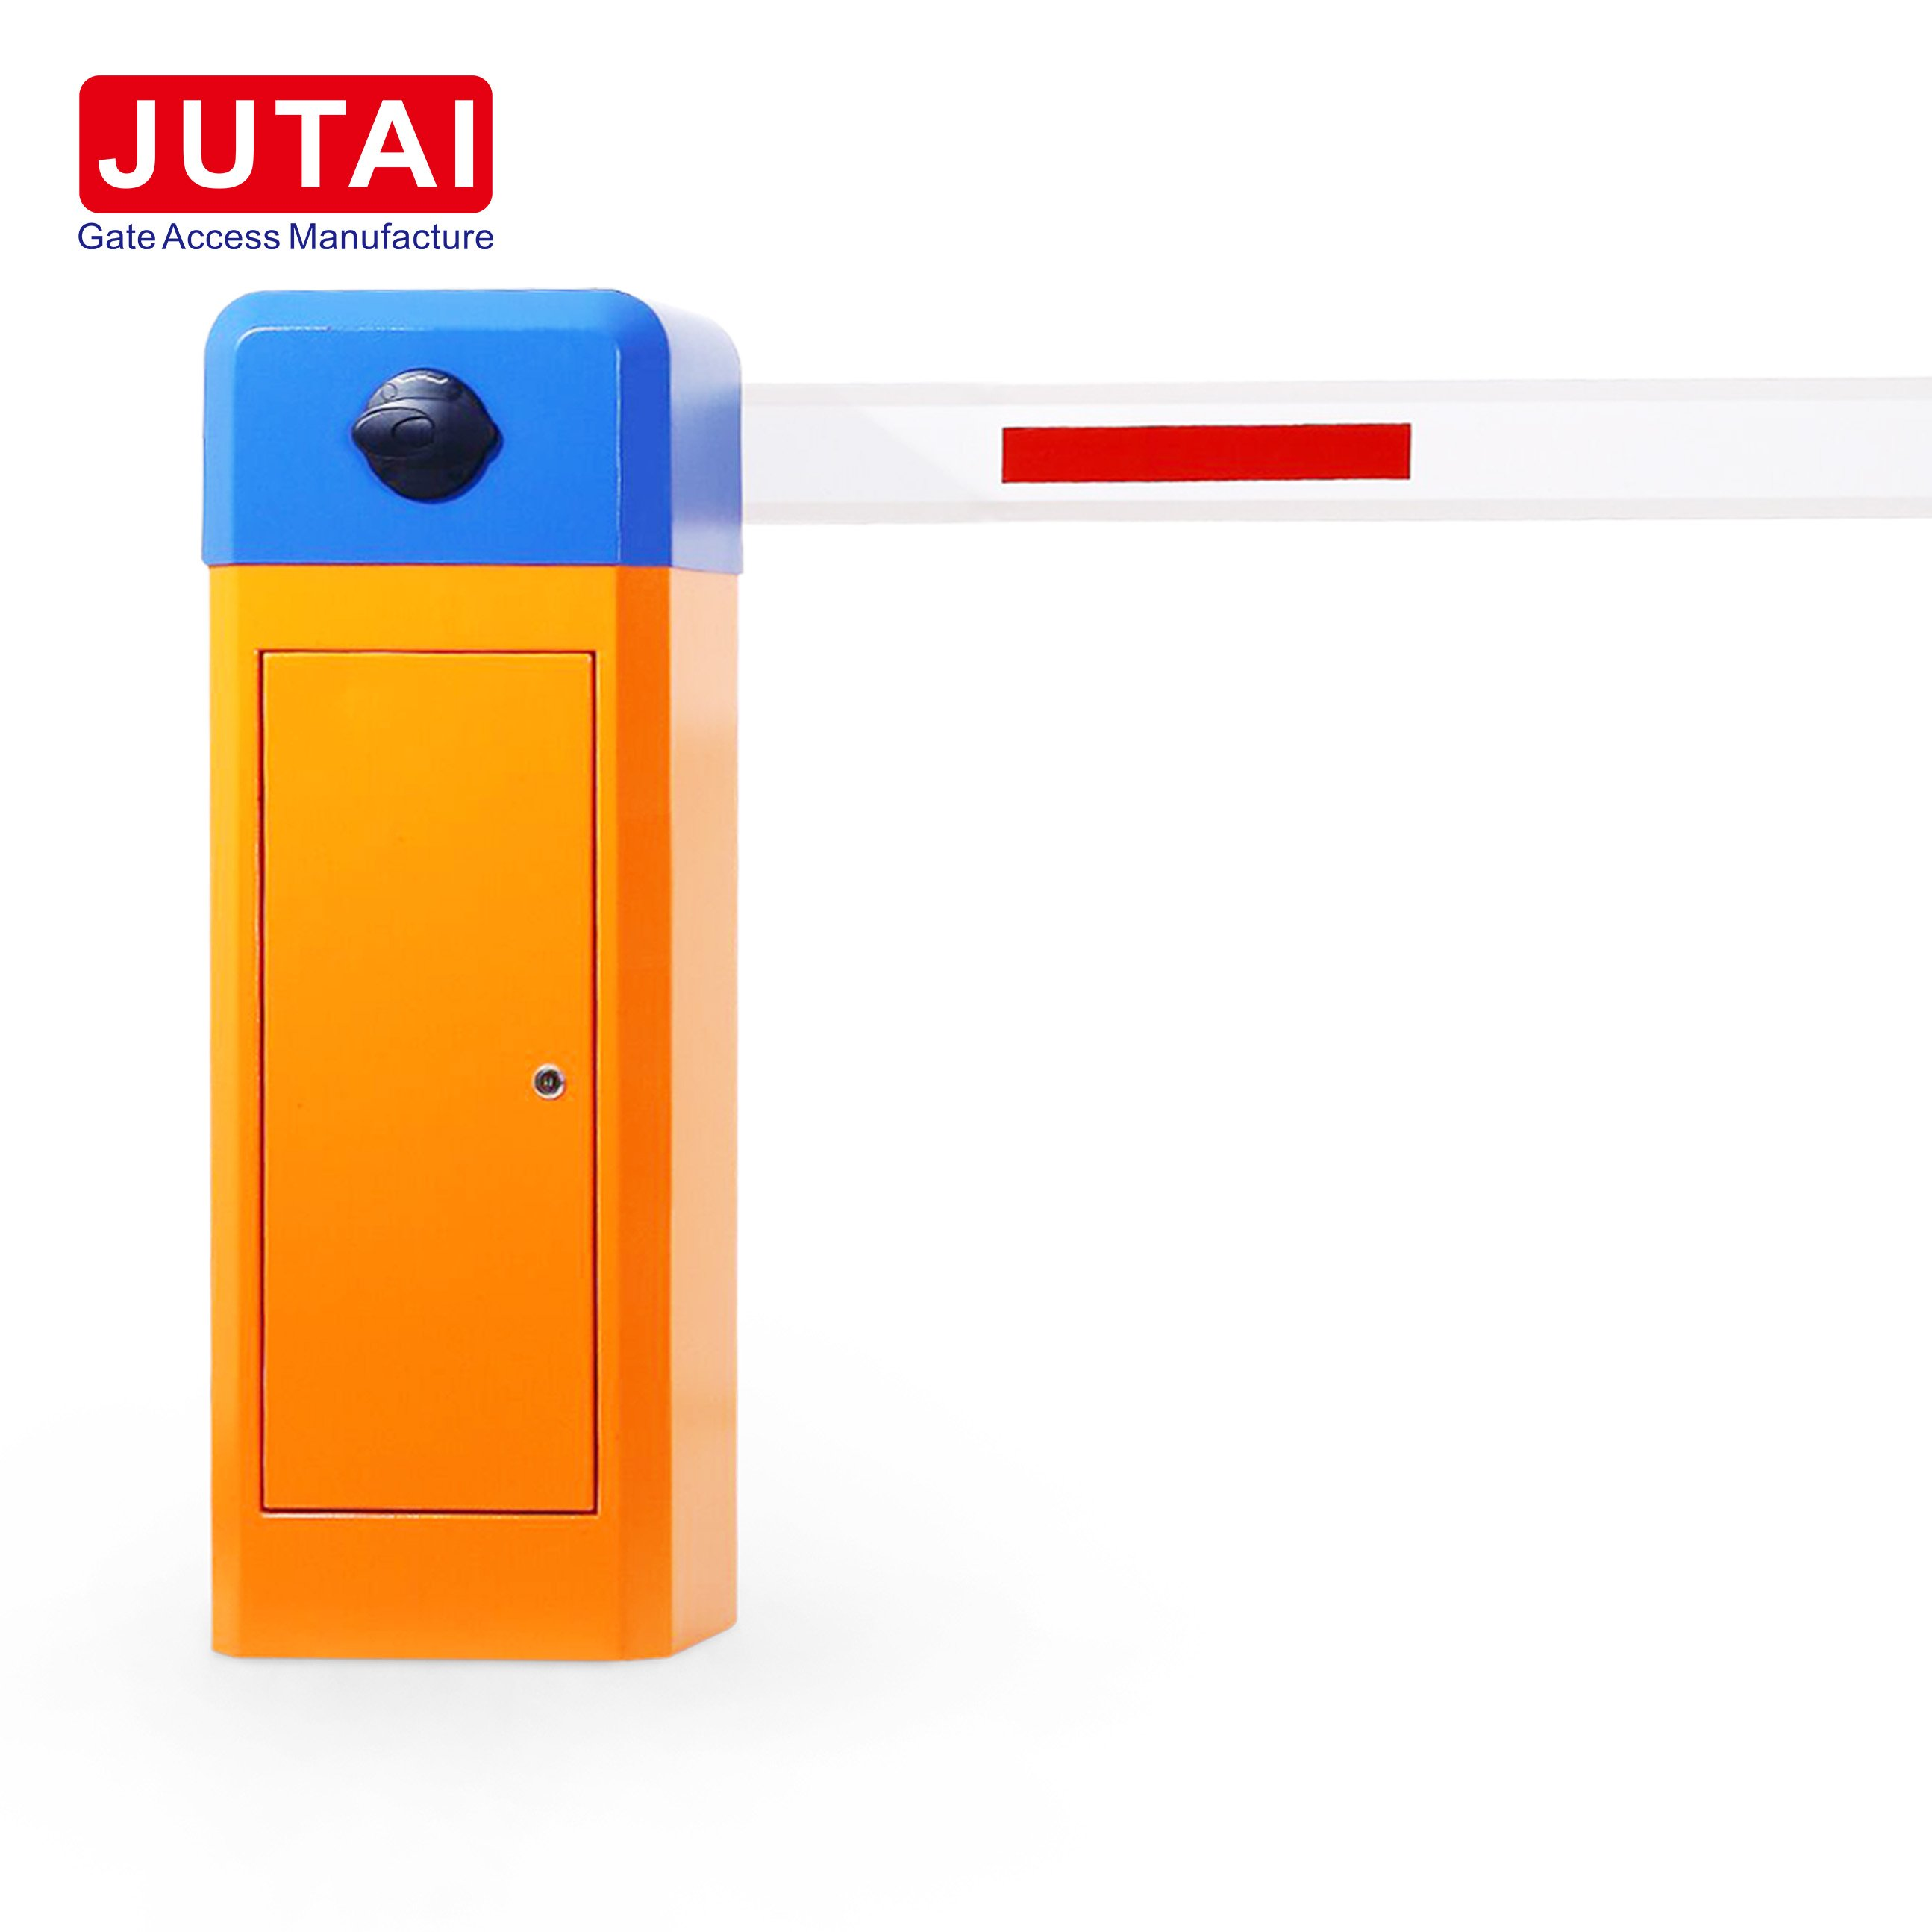 بوابة JUTAI Arm Barrier